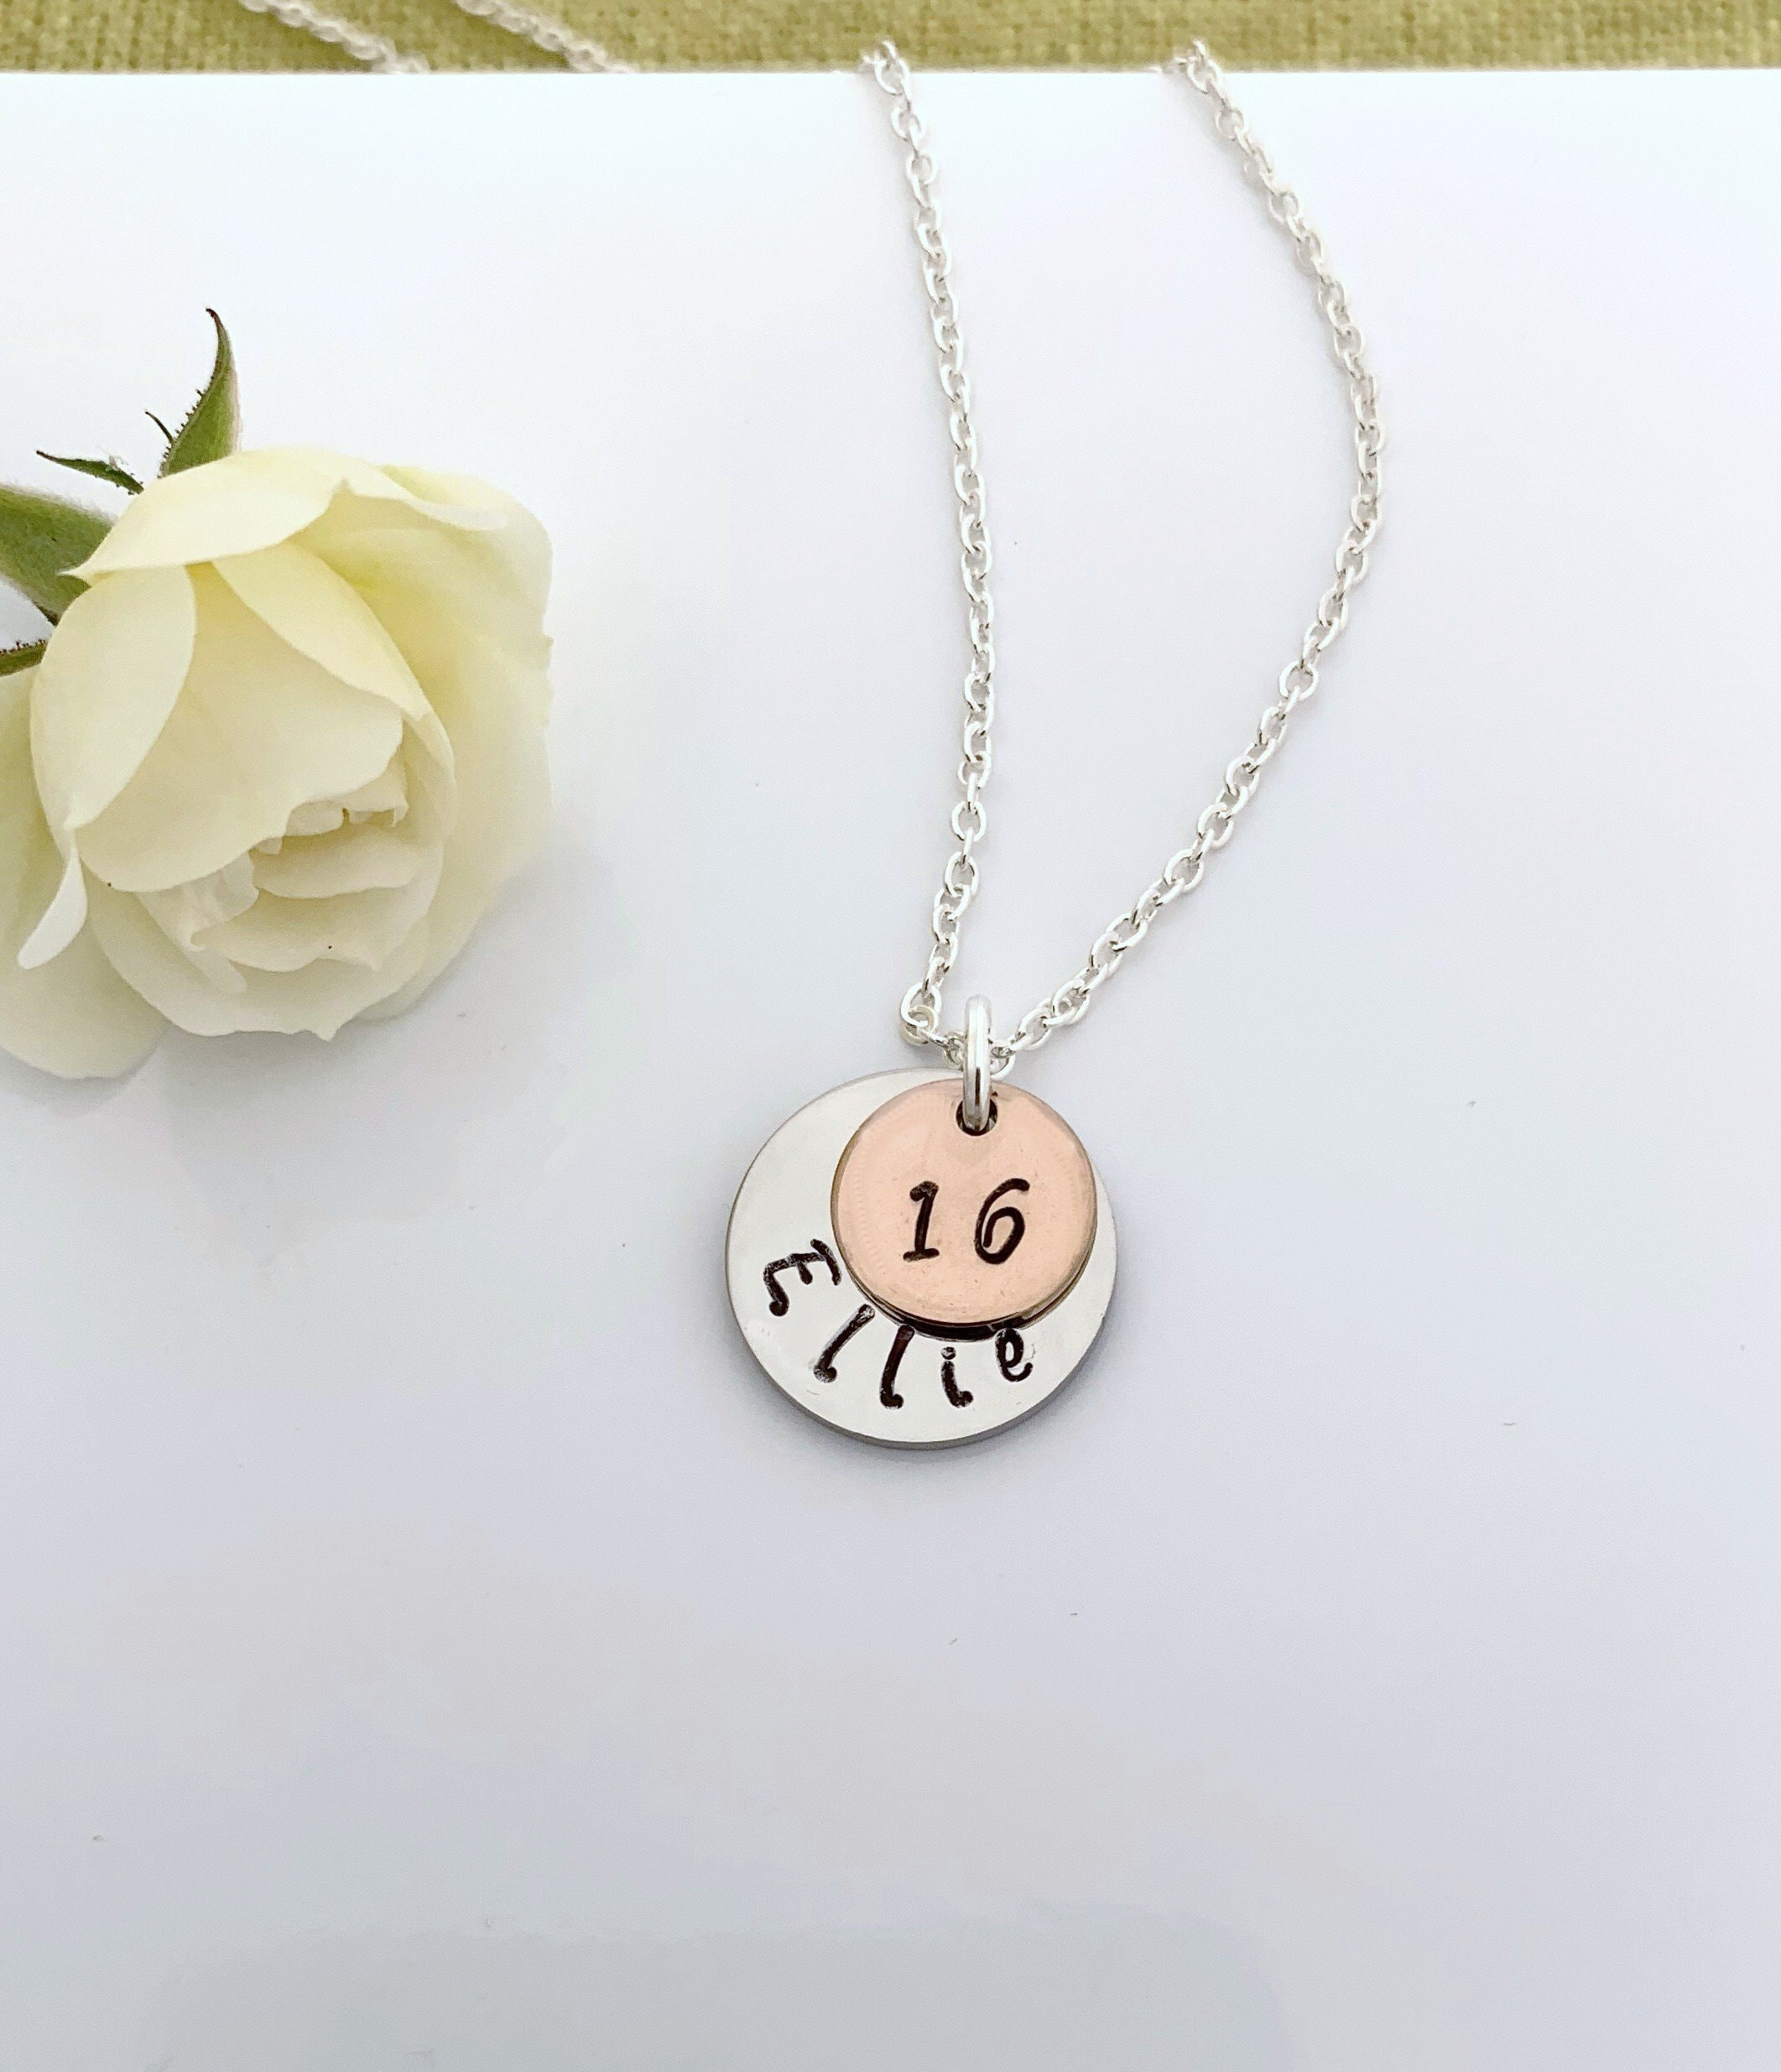 Personalised 16th Birthday Necklace Name Necklace Rose Gold Charm Gift Boxed Uk Seller Any 1 Or 2 Digit Number